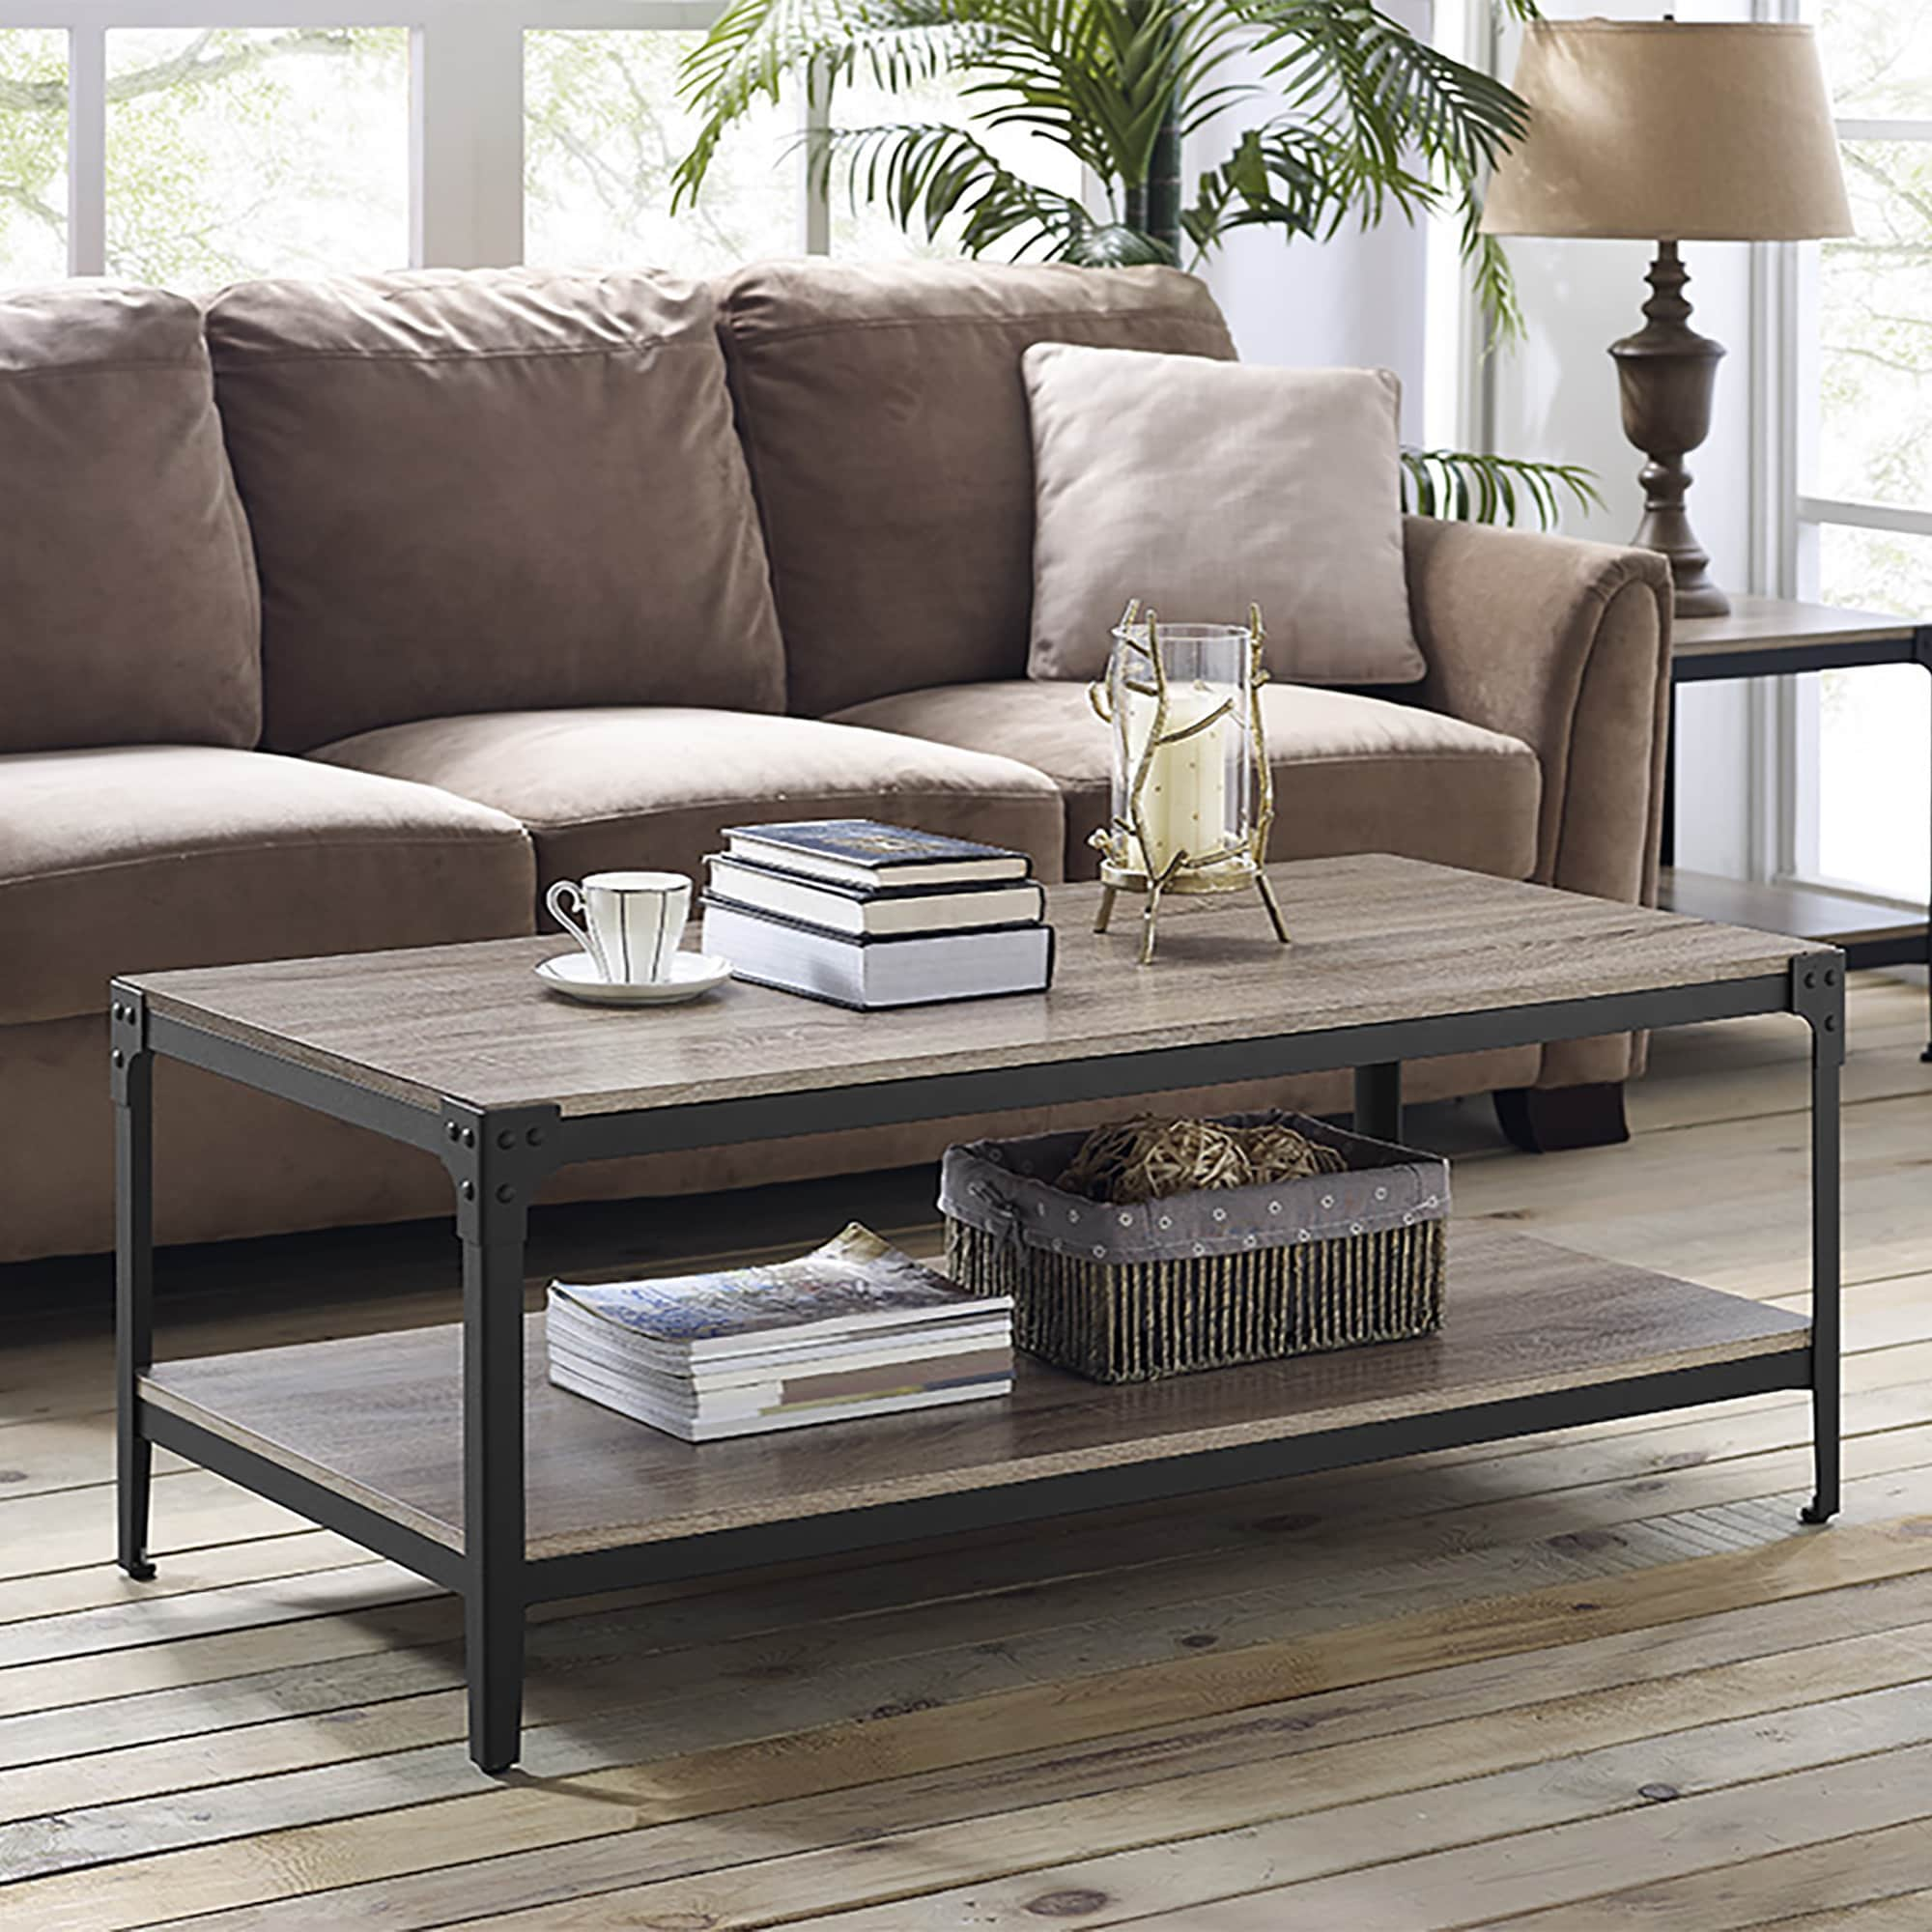 Driftwood Coffee Table.Carbon Loft Witten Angle Iron And Driftwood Coffee Table